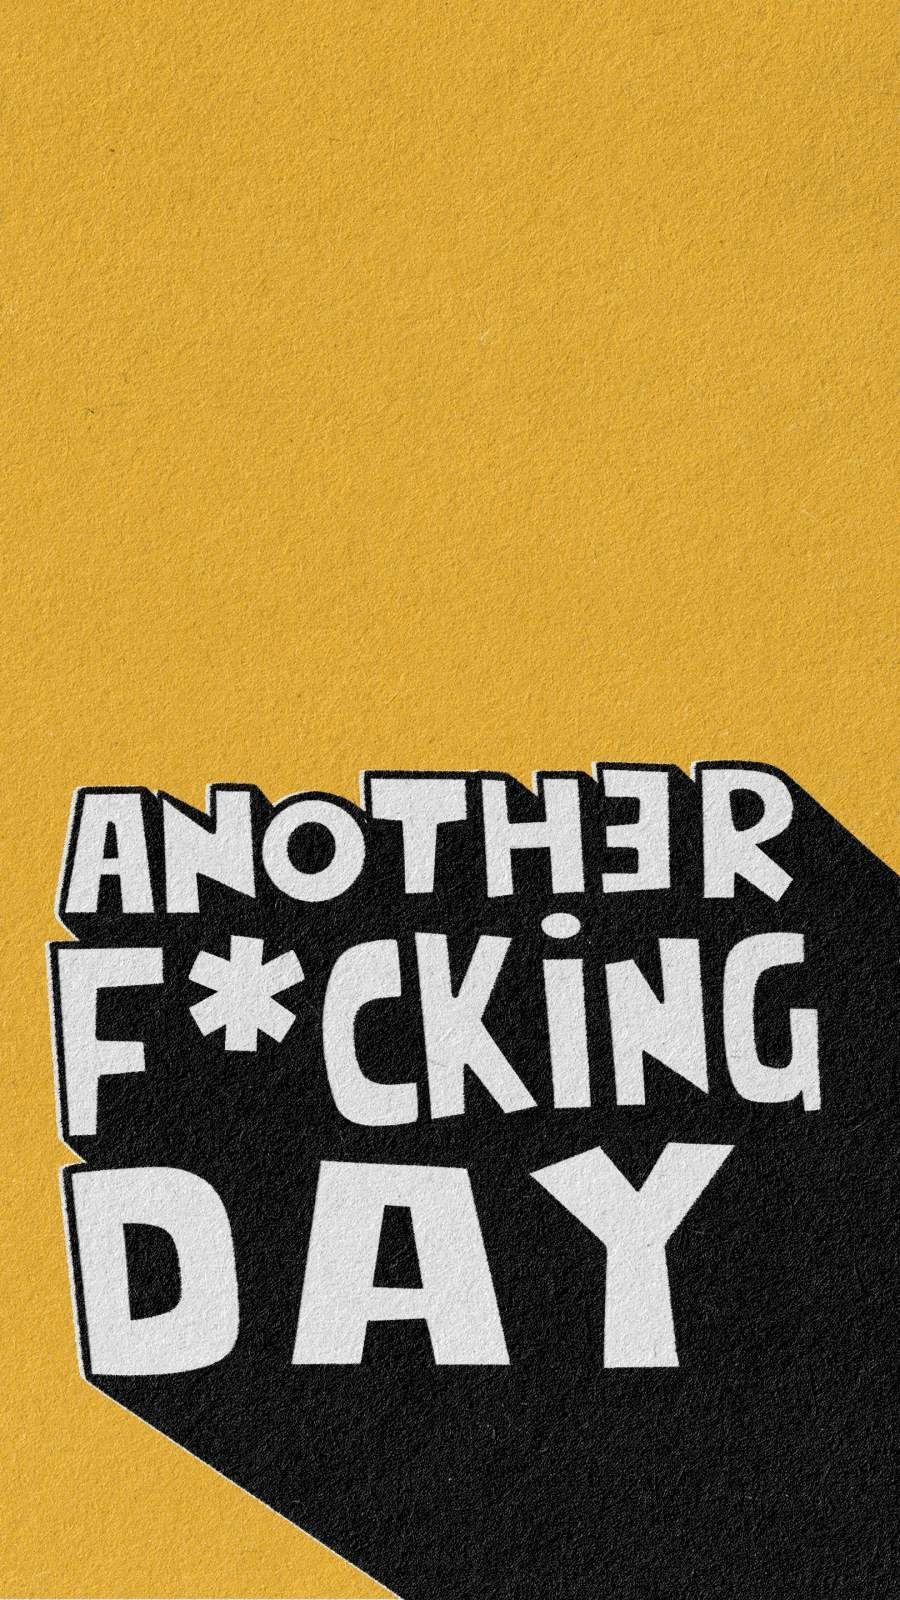 Another Freaking Day iPhone Wallpaper - iPhone Wallpapers